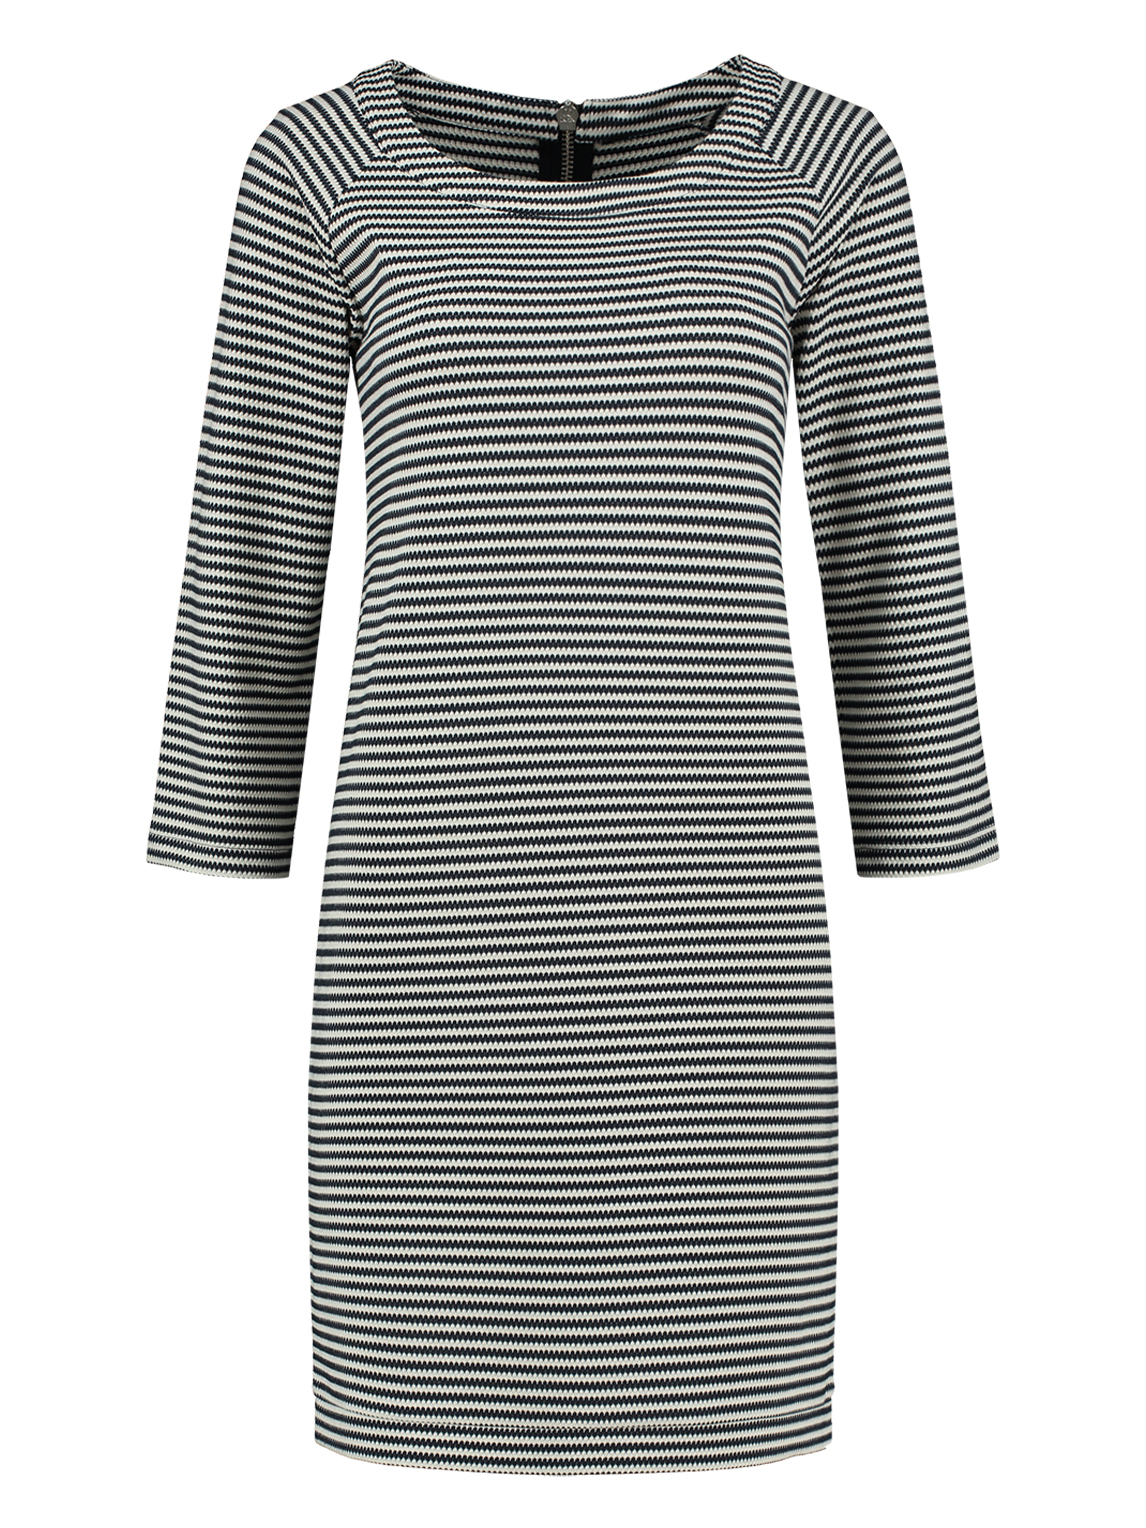 Gestreepte dames jurk Nikkie - Kay Dress - N5-299 1904 7812